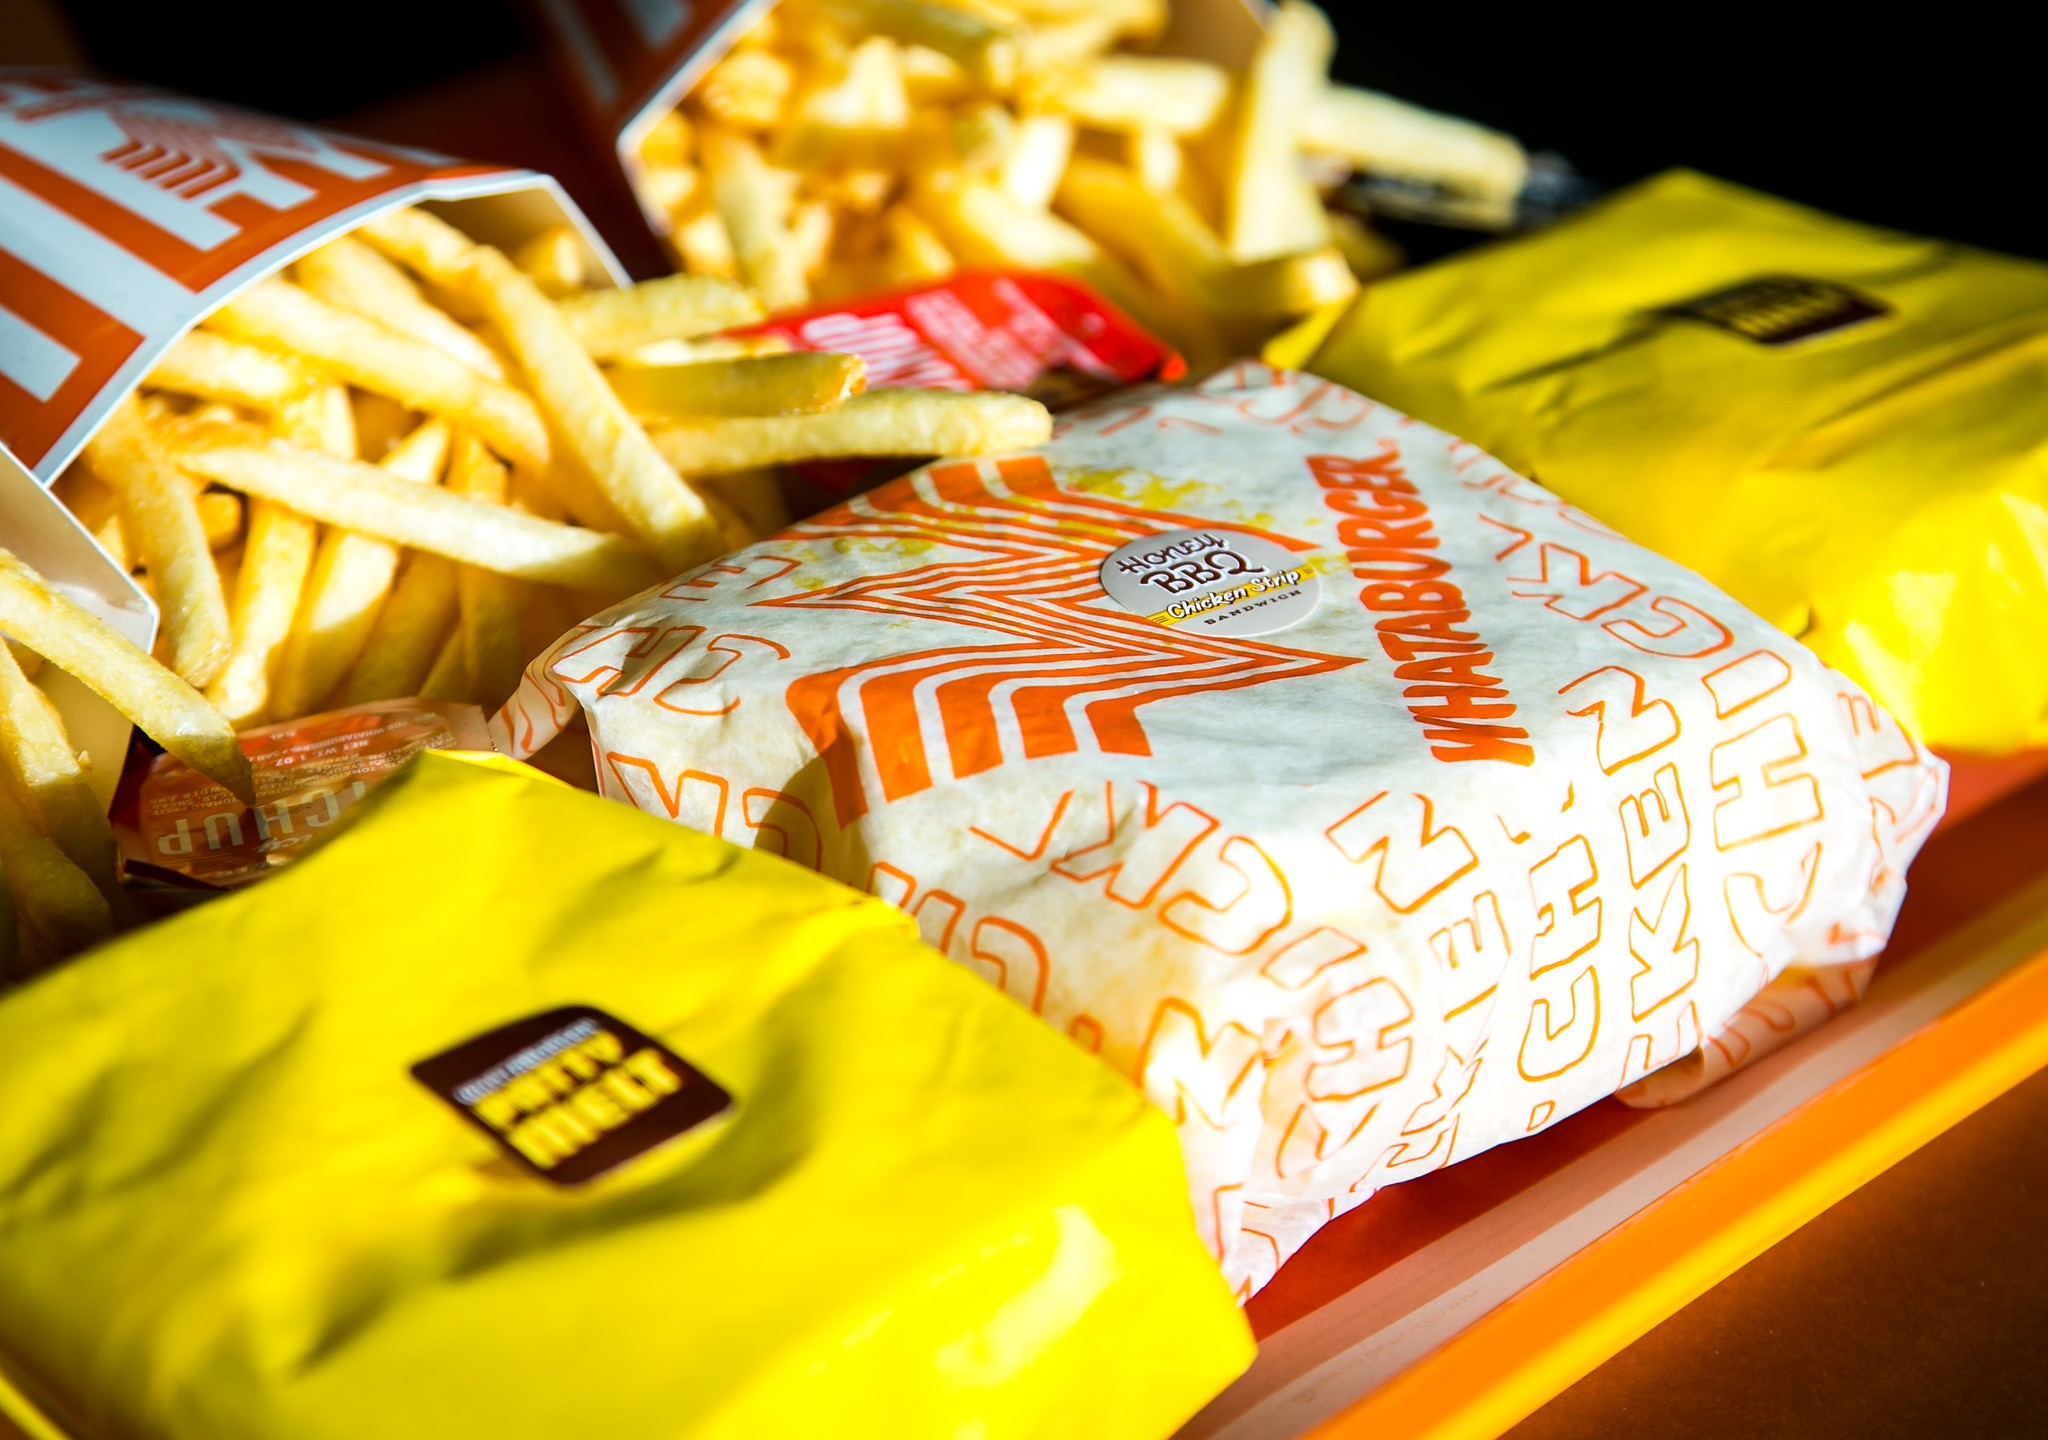 Picture of burgers, fries from Whataburger